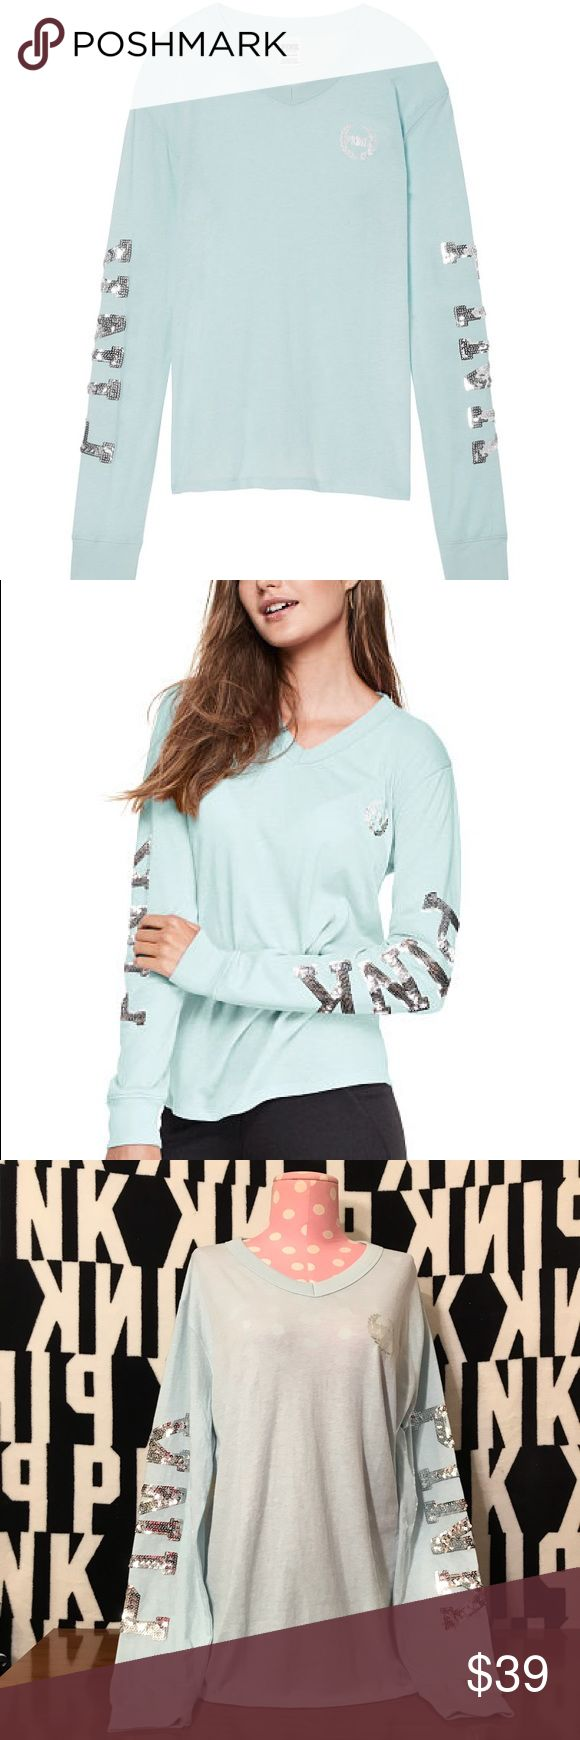 VS PINK BLING MINT LONG SLEEVE V NECK RINGER TEE ❌PRICE IS FIRM❌(UNLESS BUNDLED) ✨✨⭐️bundle discount is taken automatically⭐️✨✨ NEW IN PACKAGE OR NEW WITH TAG ✨TRUE TO SIZE ✅AUTHENTIC✅ ❌NO TRADES❌ PINK Victoria's Secret Tops Tees - Long Sleeve